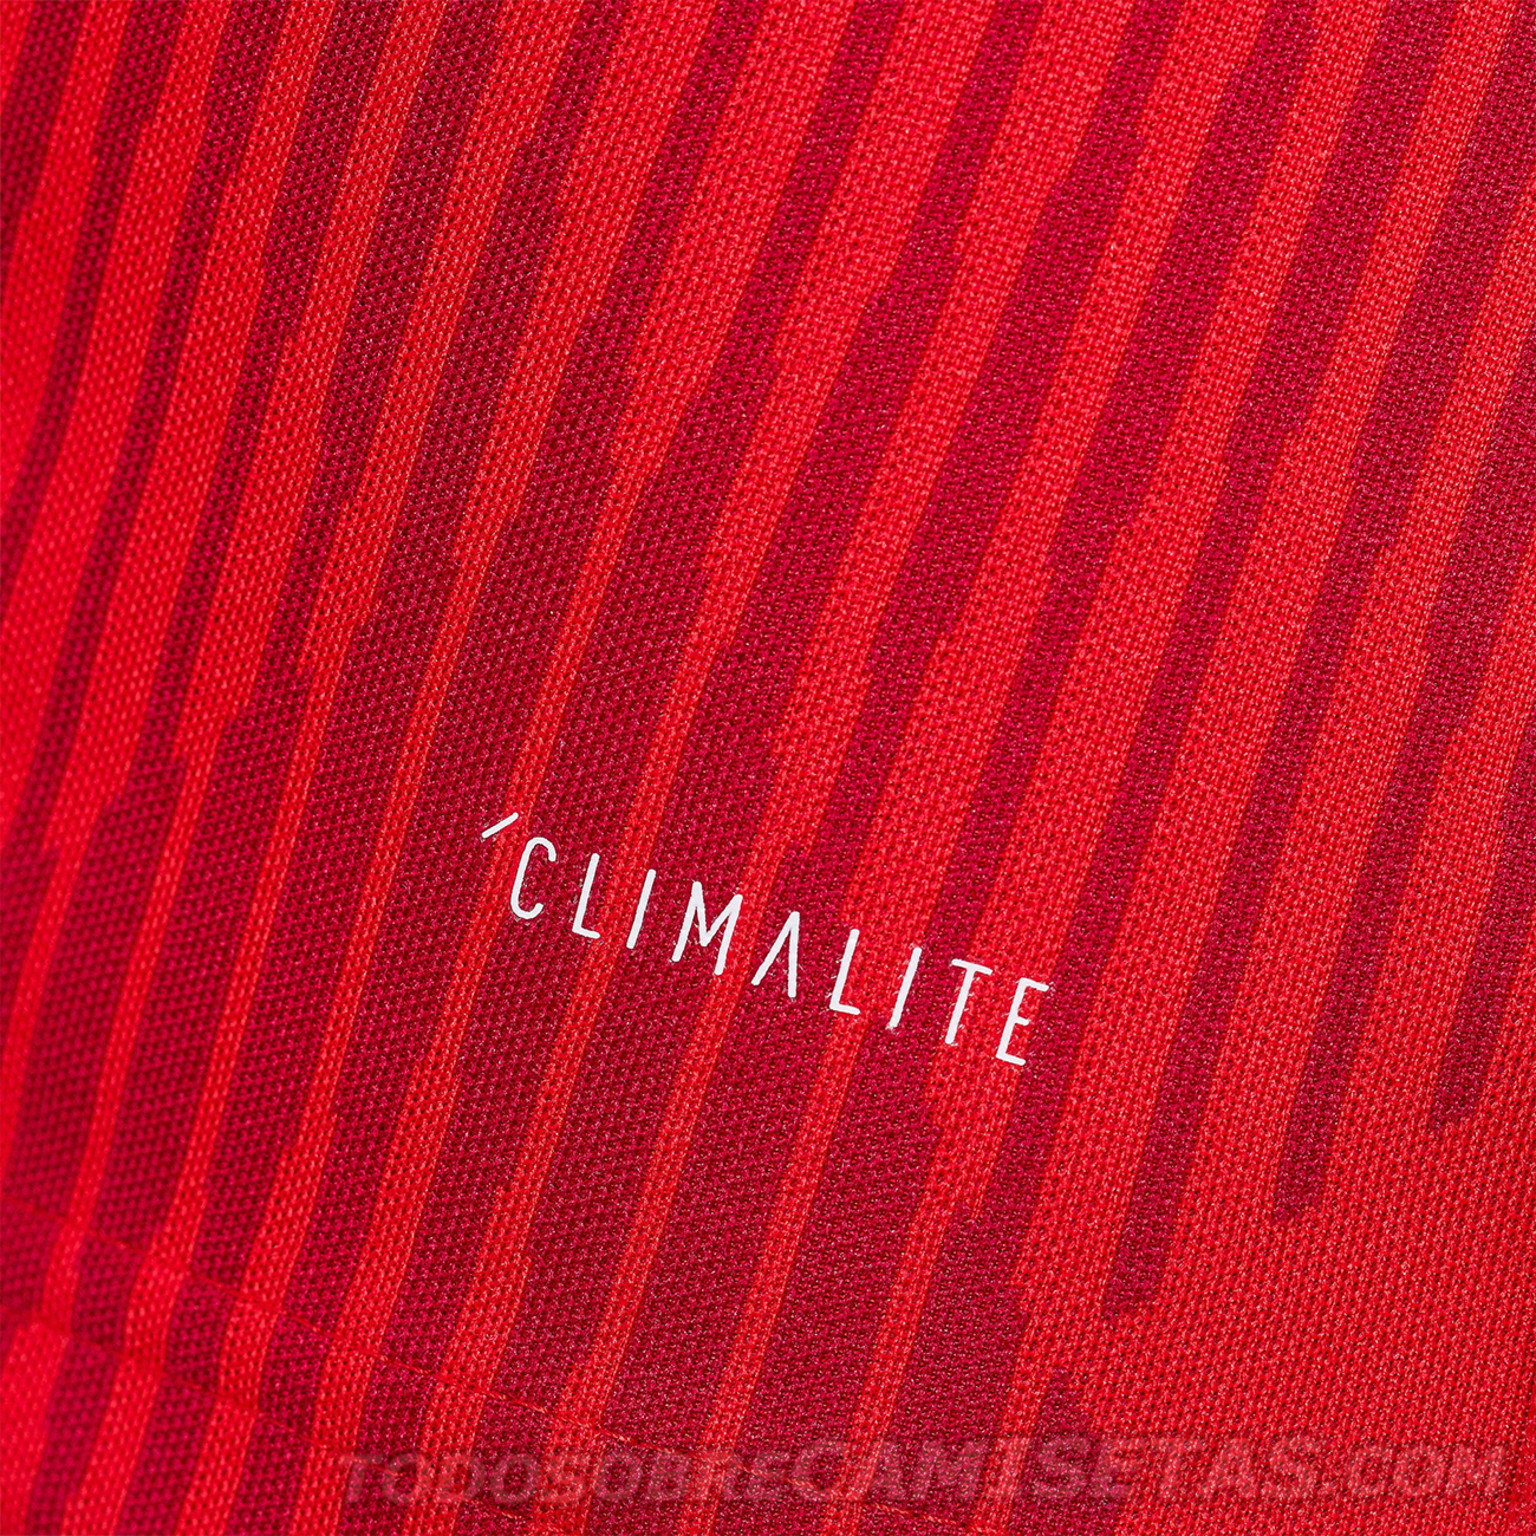 Bayern-Munich-2018-19-adidas-new-home-kit-12.jpg